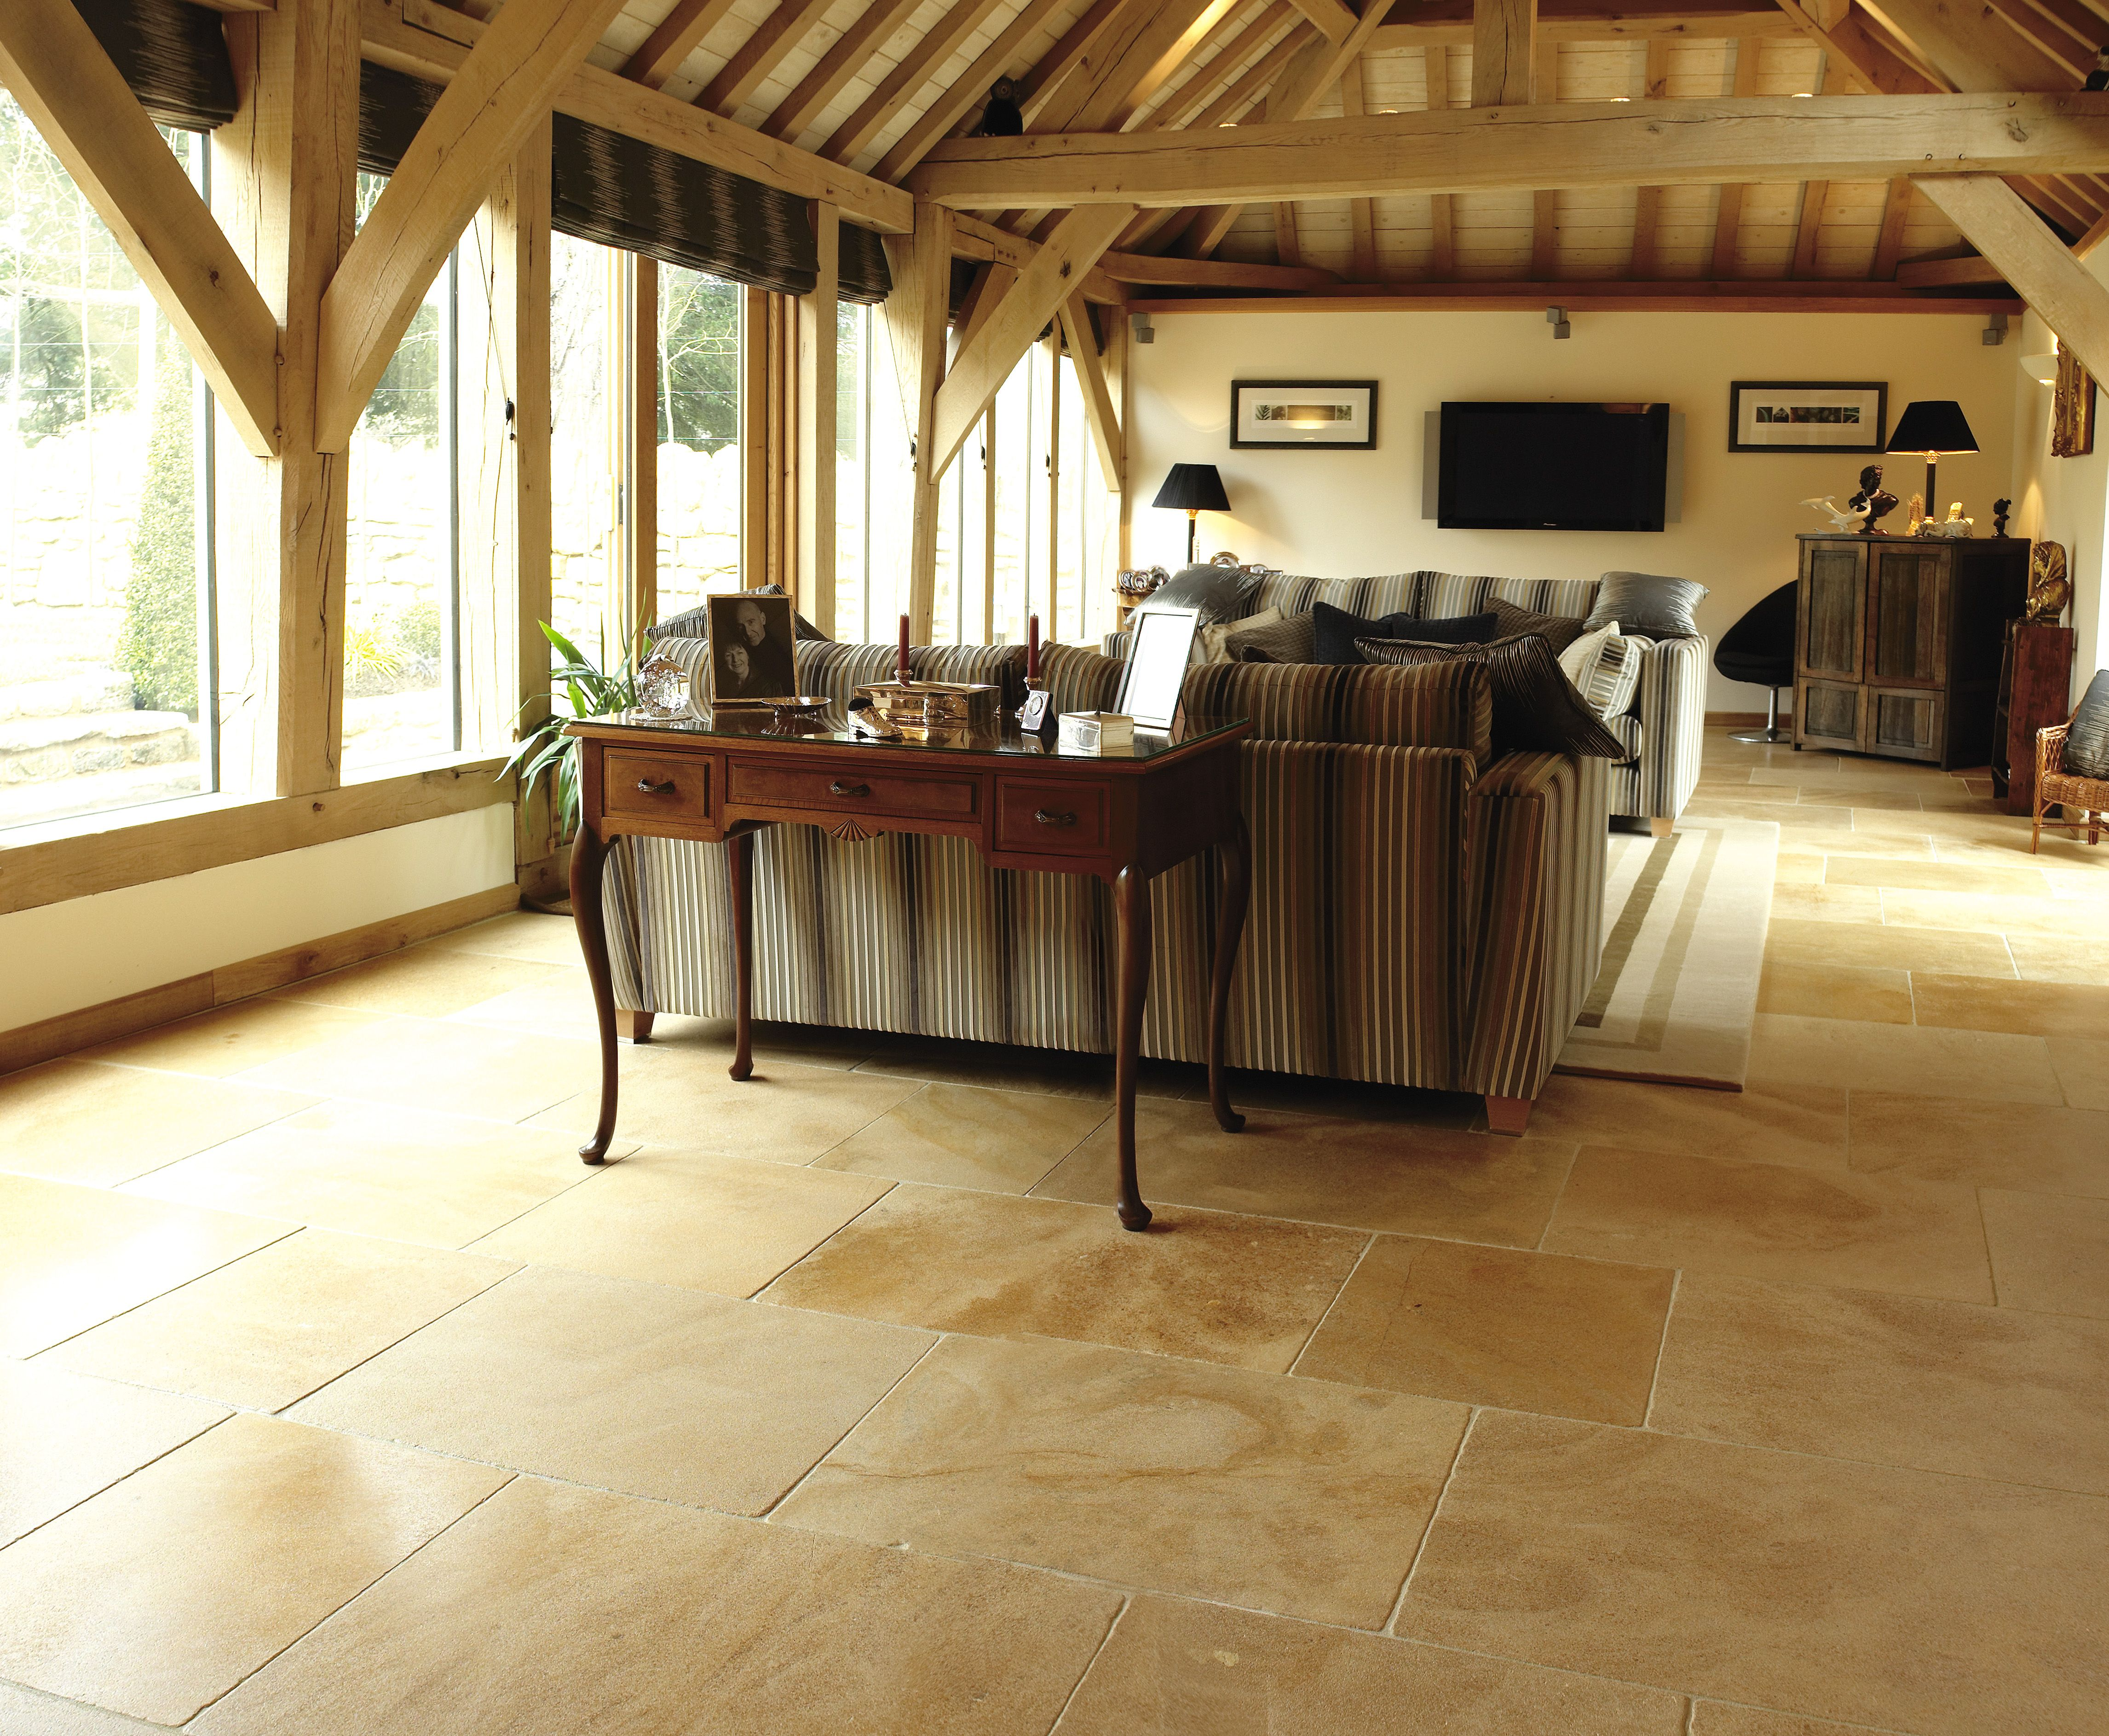 Cotswold cream a flagstone floor tile for kitchens of barn cotswold cream a flagstone floor tile for kitchens of barn conversions dailygadgetfo Images